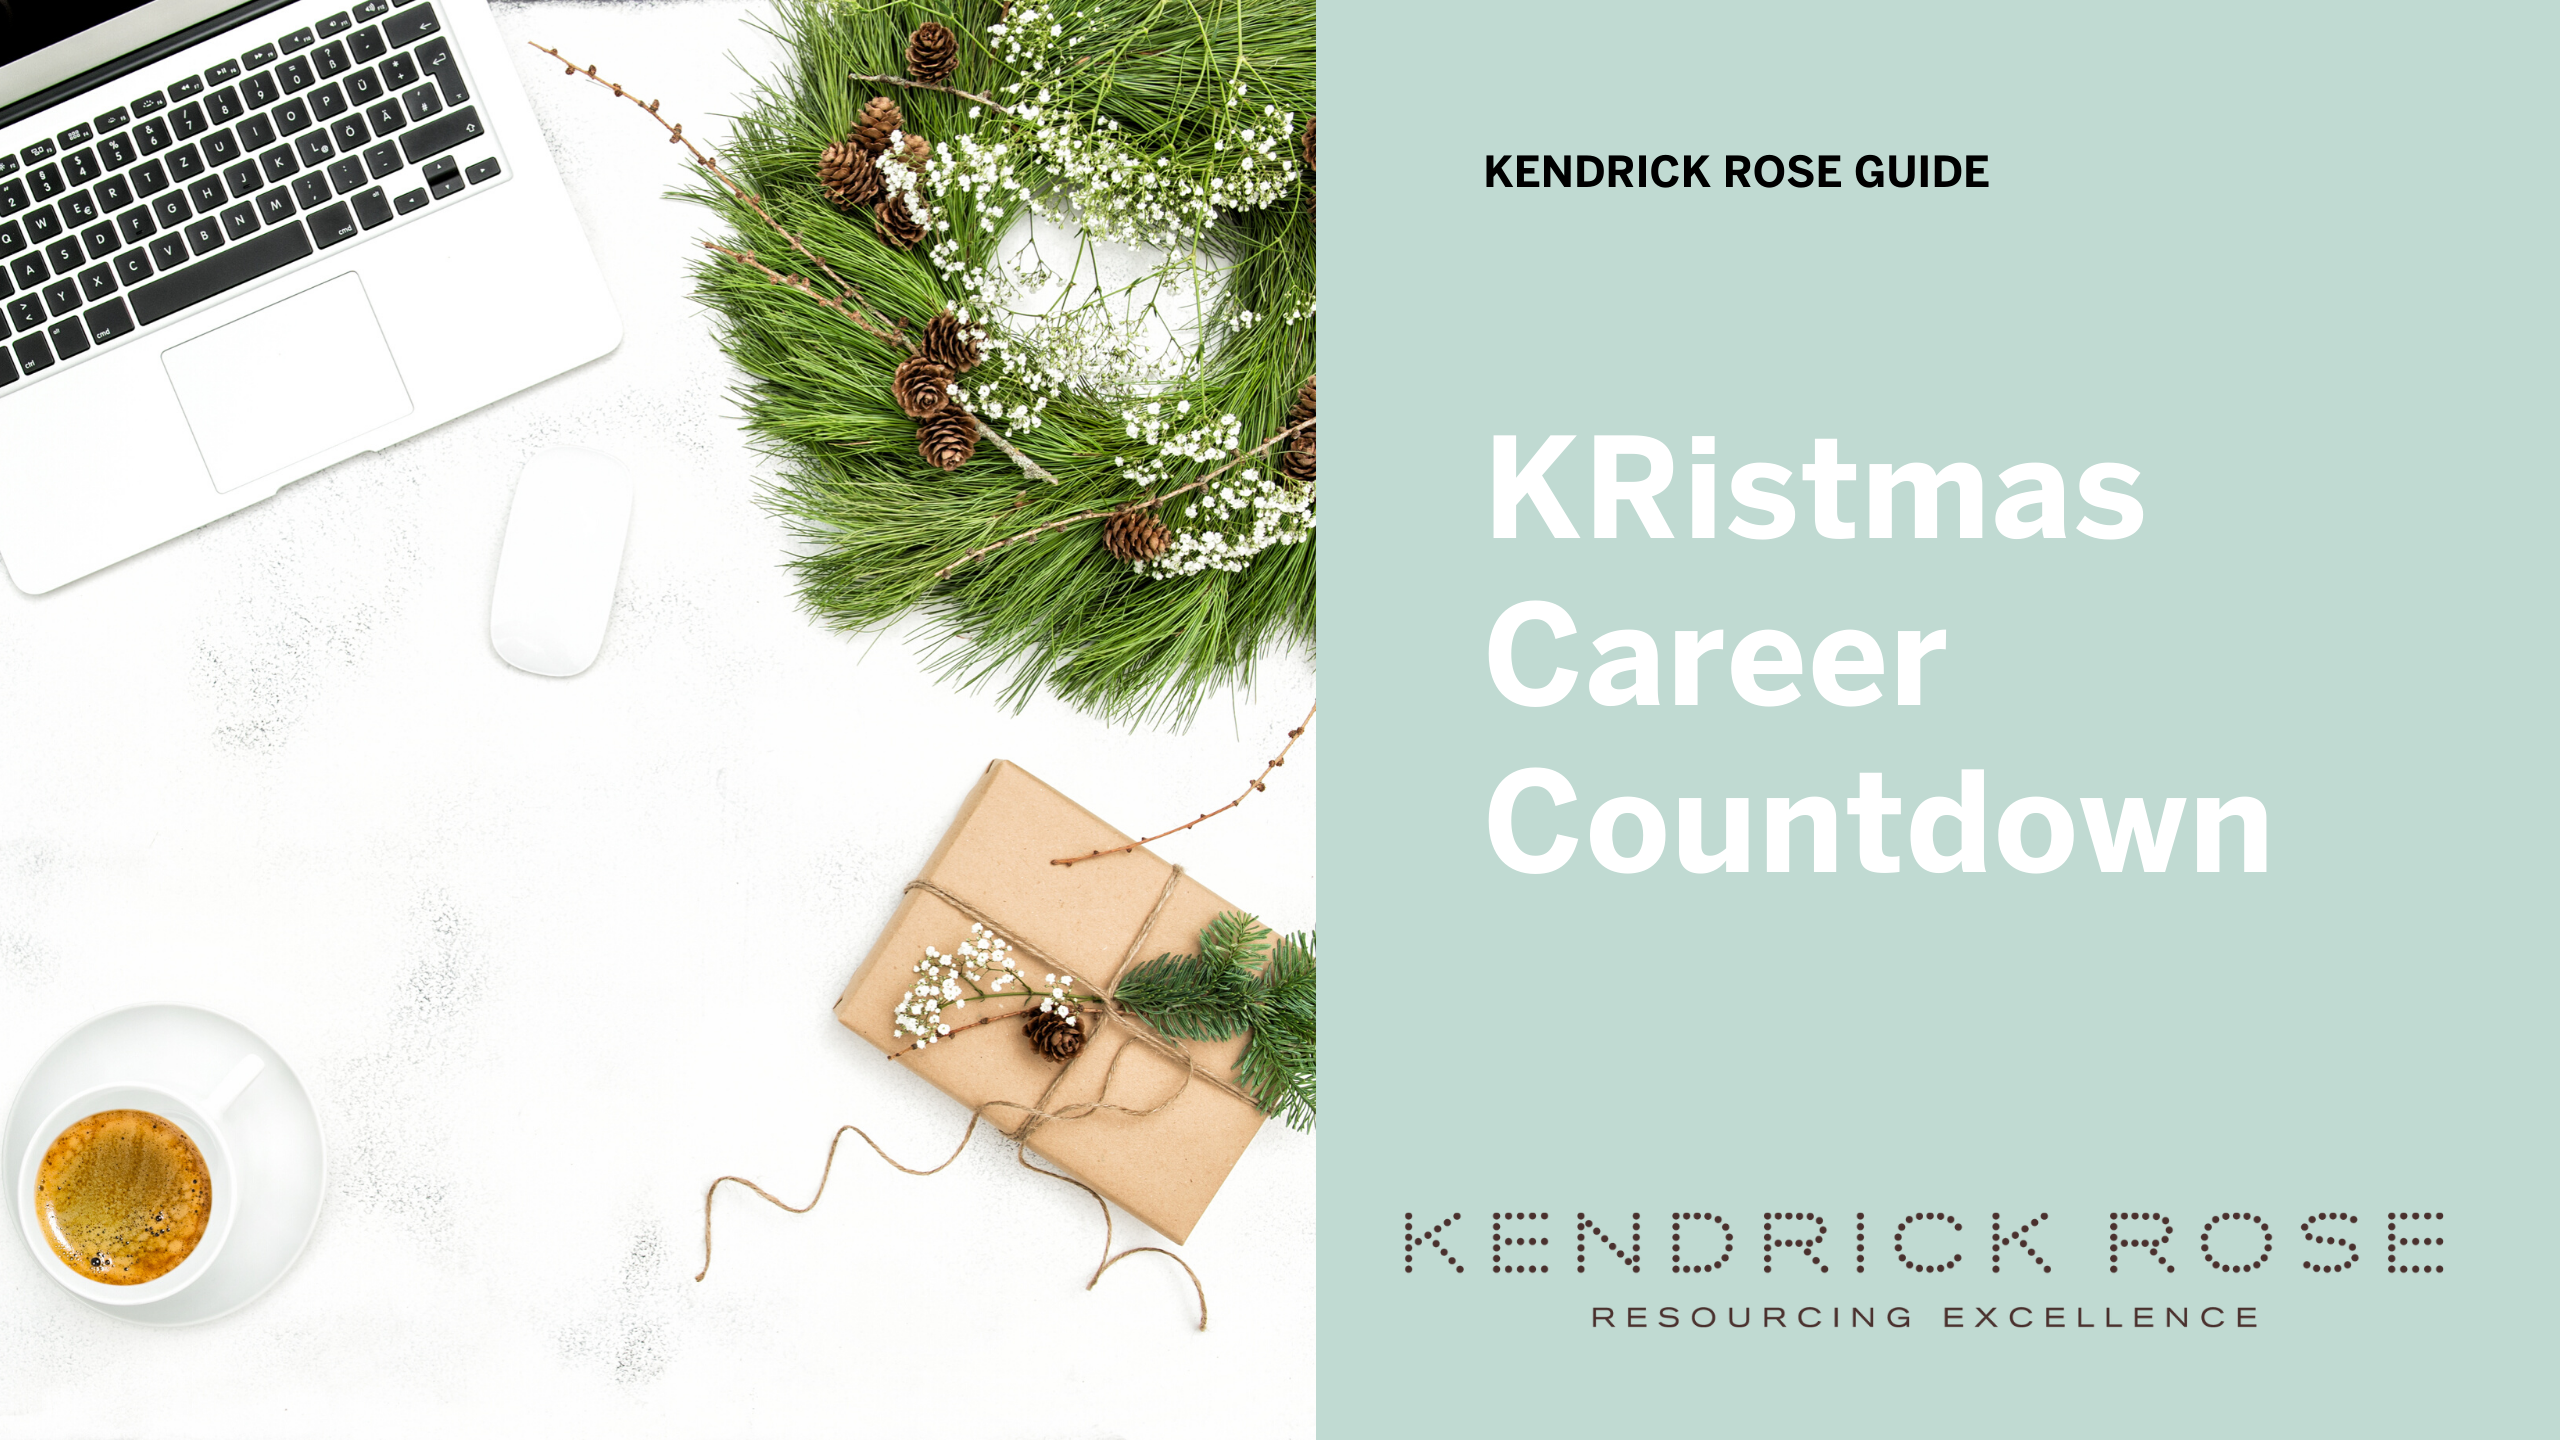 Kristmas Career Countdown